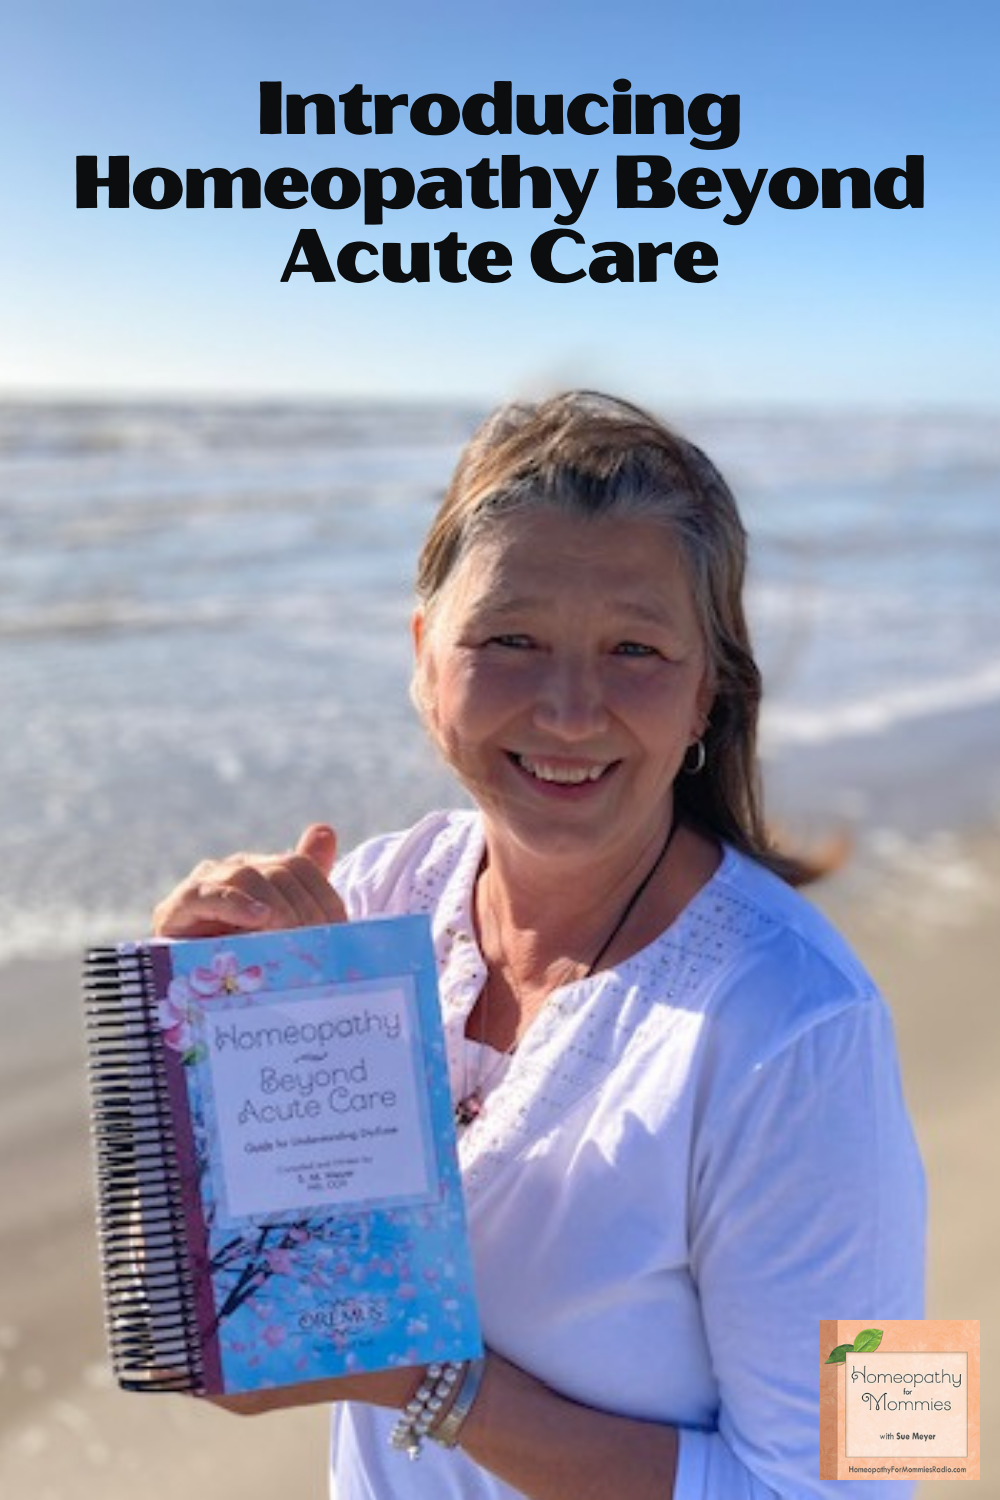 This week on Homeopathy for Mommies, we talk about Sue's new book, Homeopathy Beyond Acute Care.